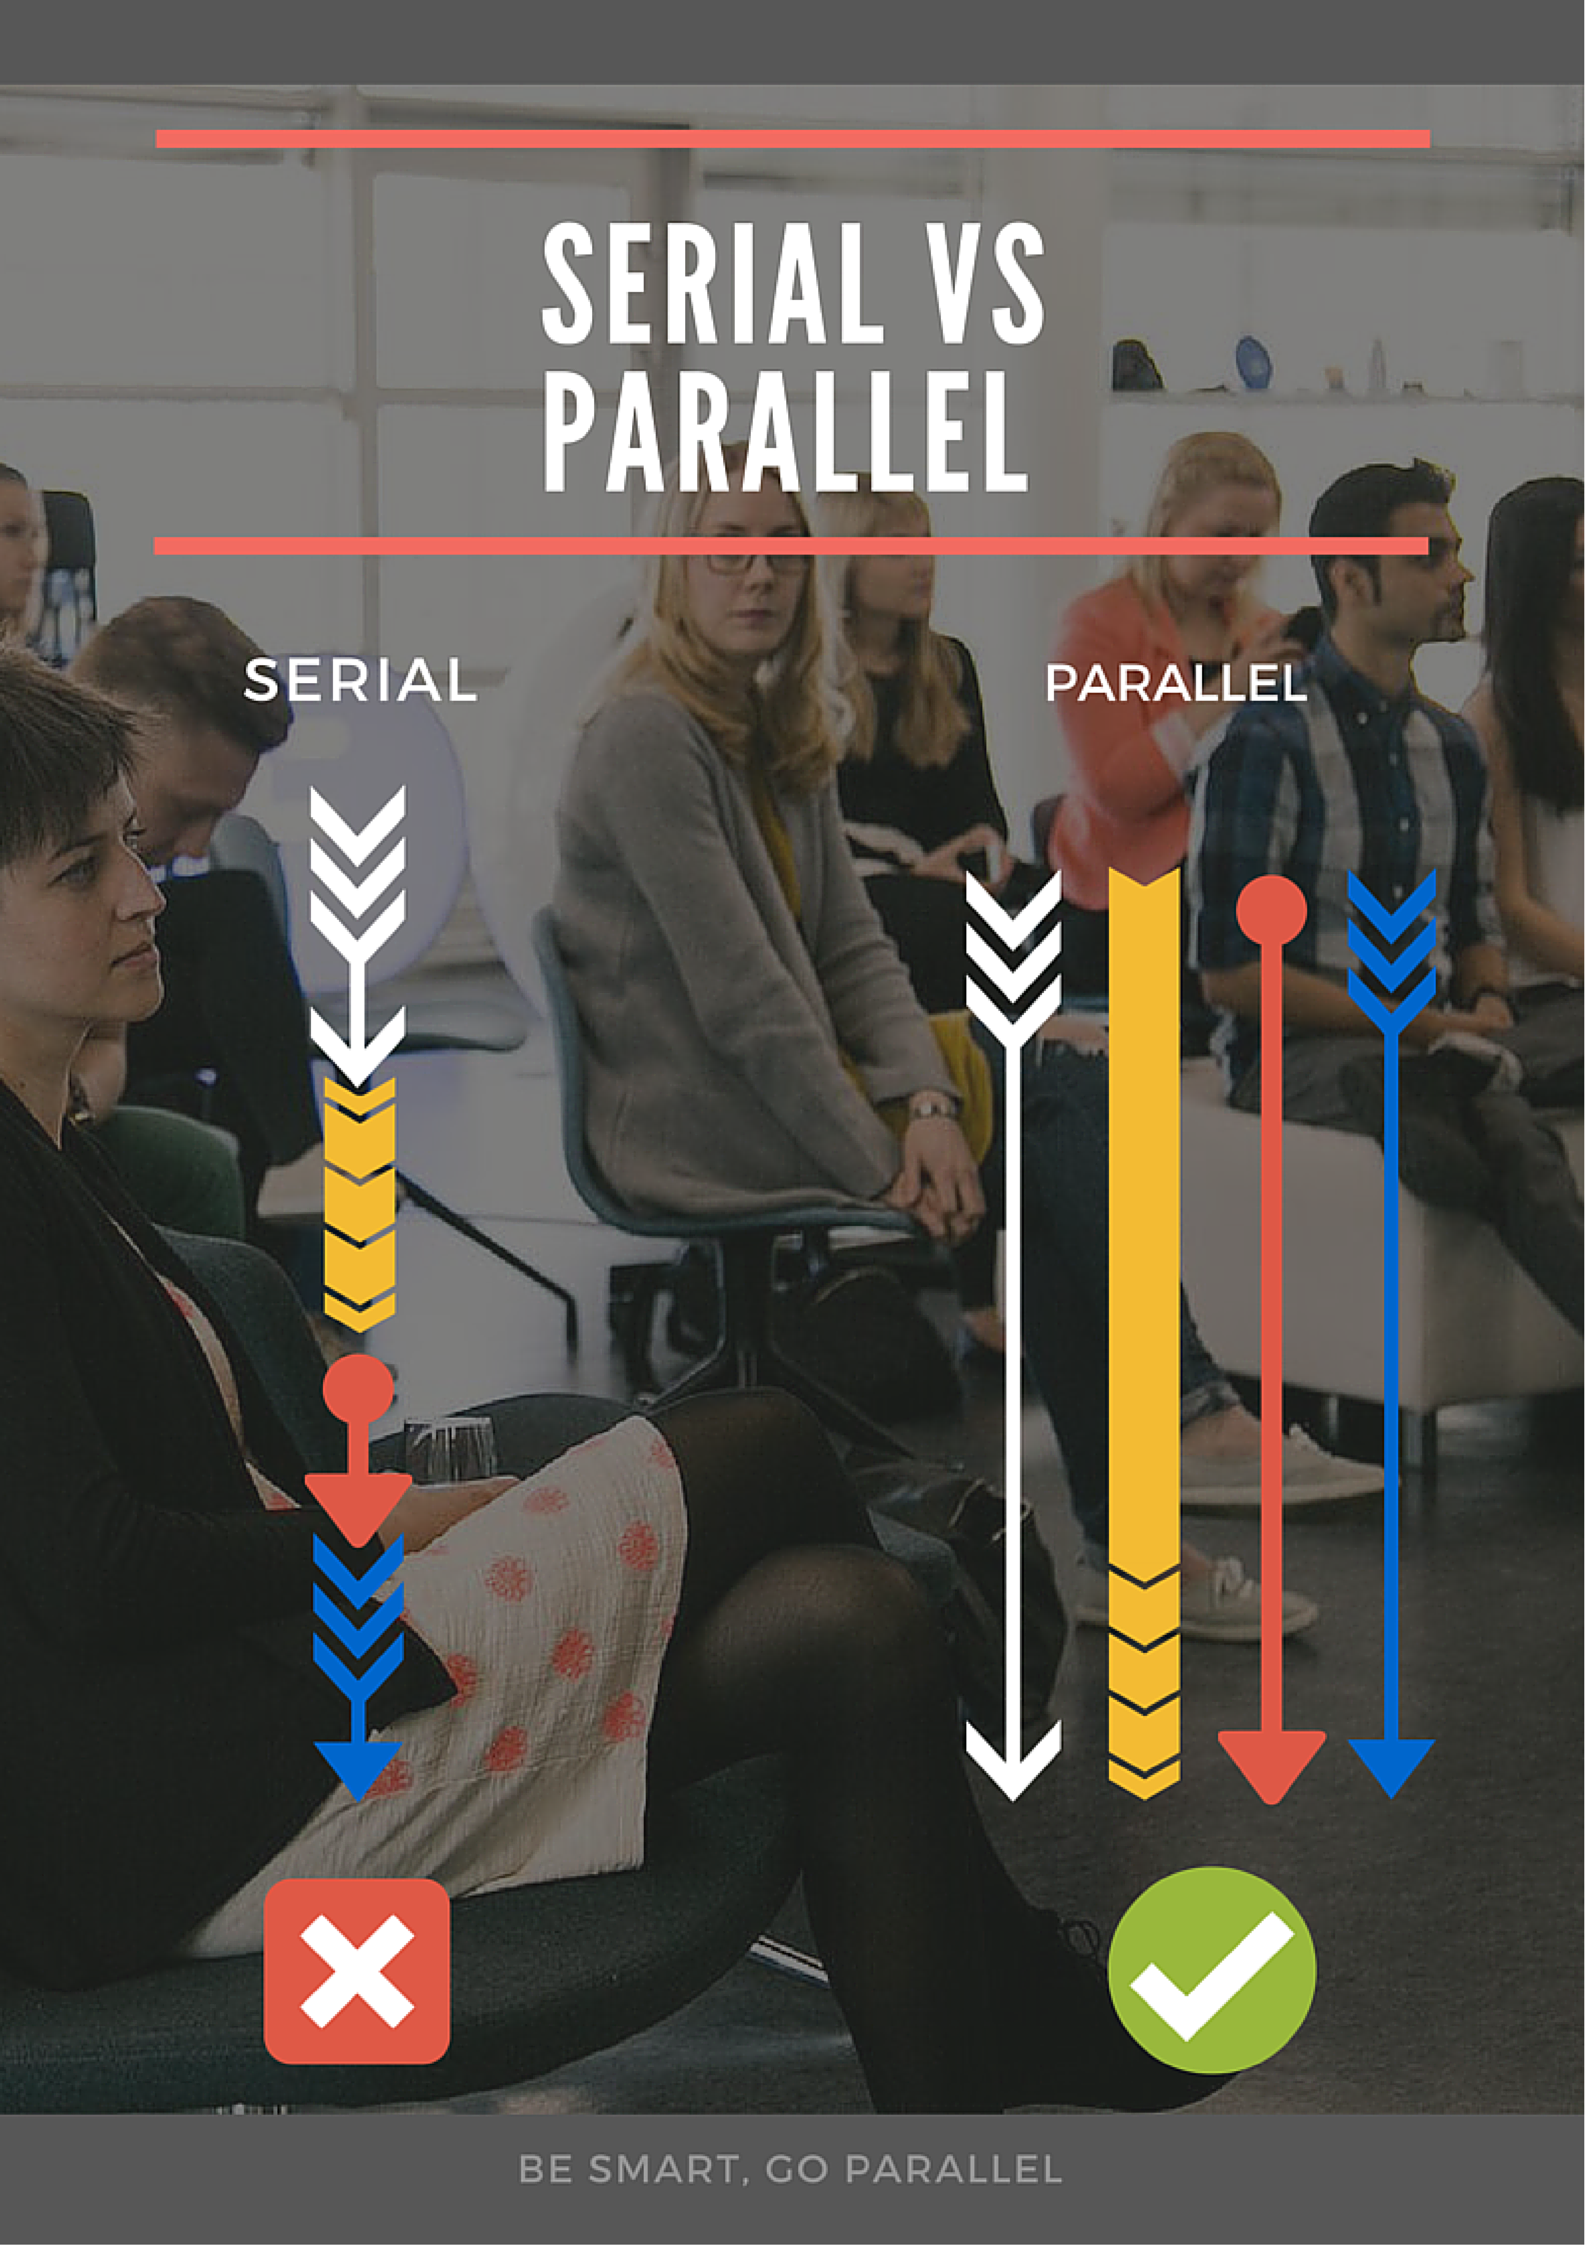 Go_Parallel.png